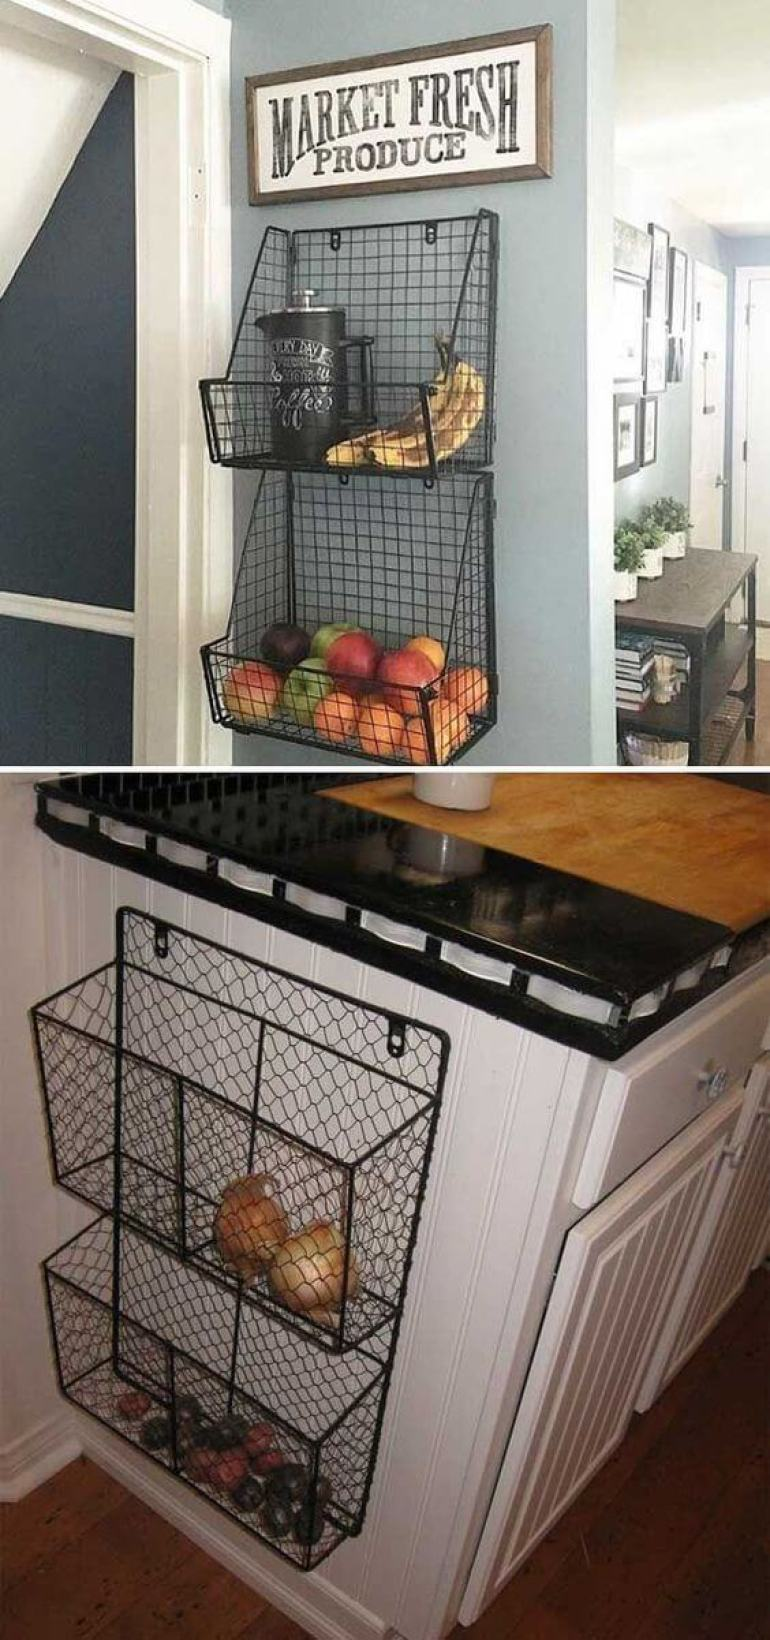 small kitchen decor ideas - 11. Wire Baskets For Kitchen Storage - Harptimes.com